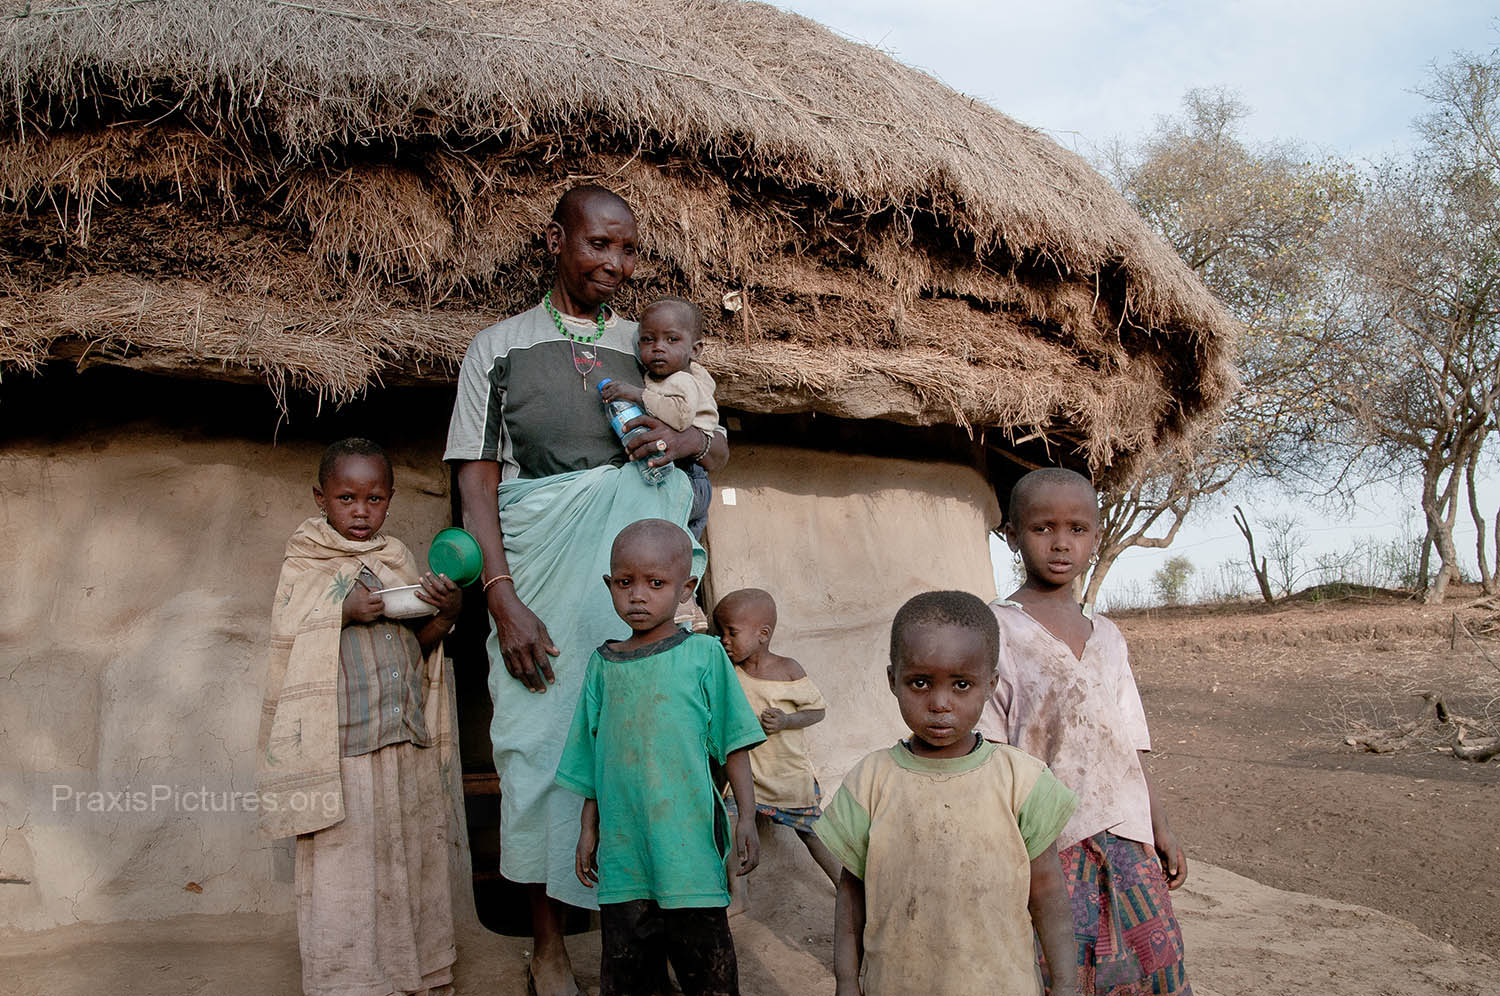 KOKOYA AND GRANDCHILDREN - With the young and able-bodied having to journey farther and farther to find water and employment, the children and elderly are left behind in the village.